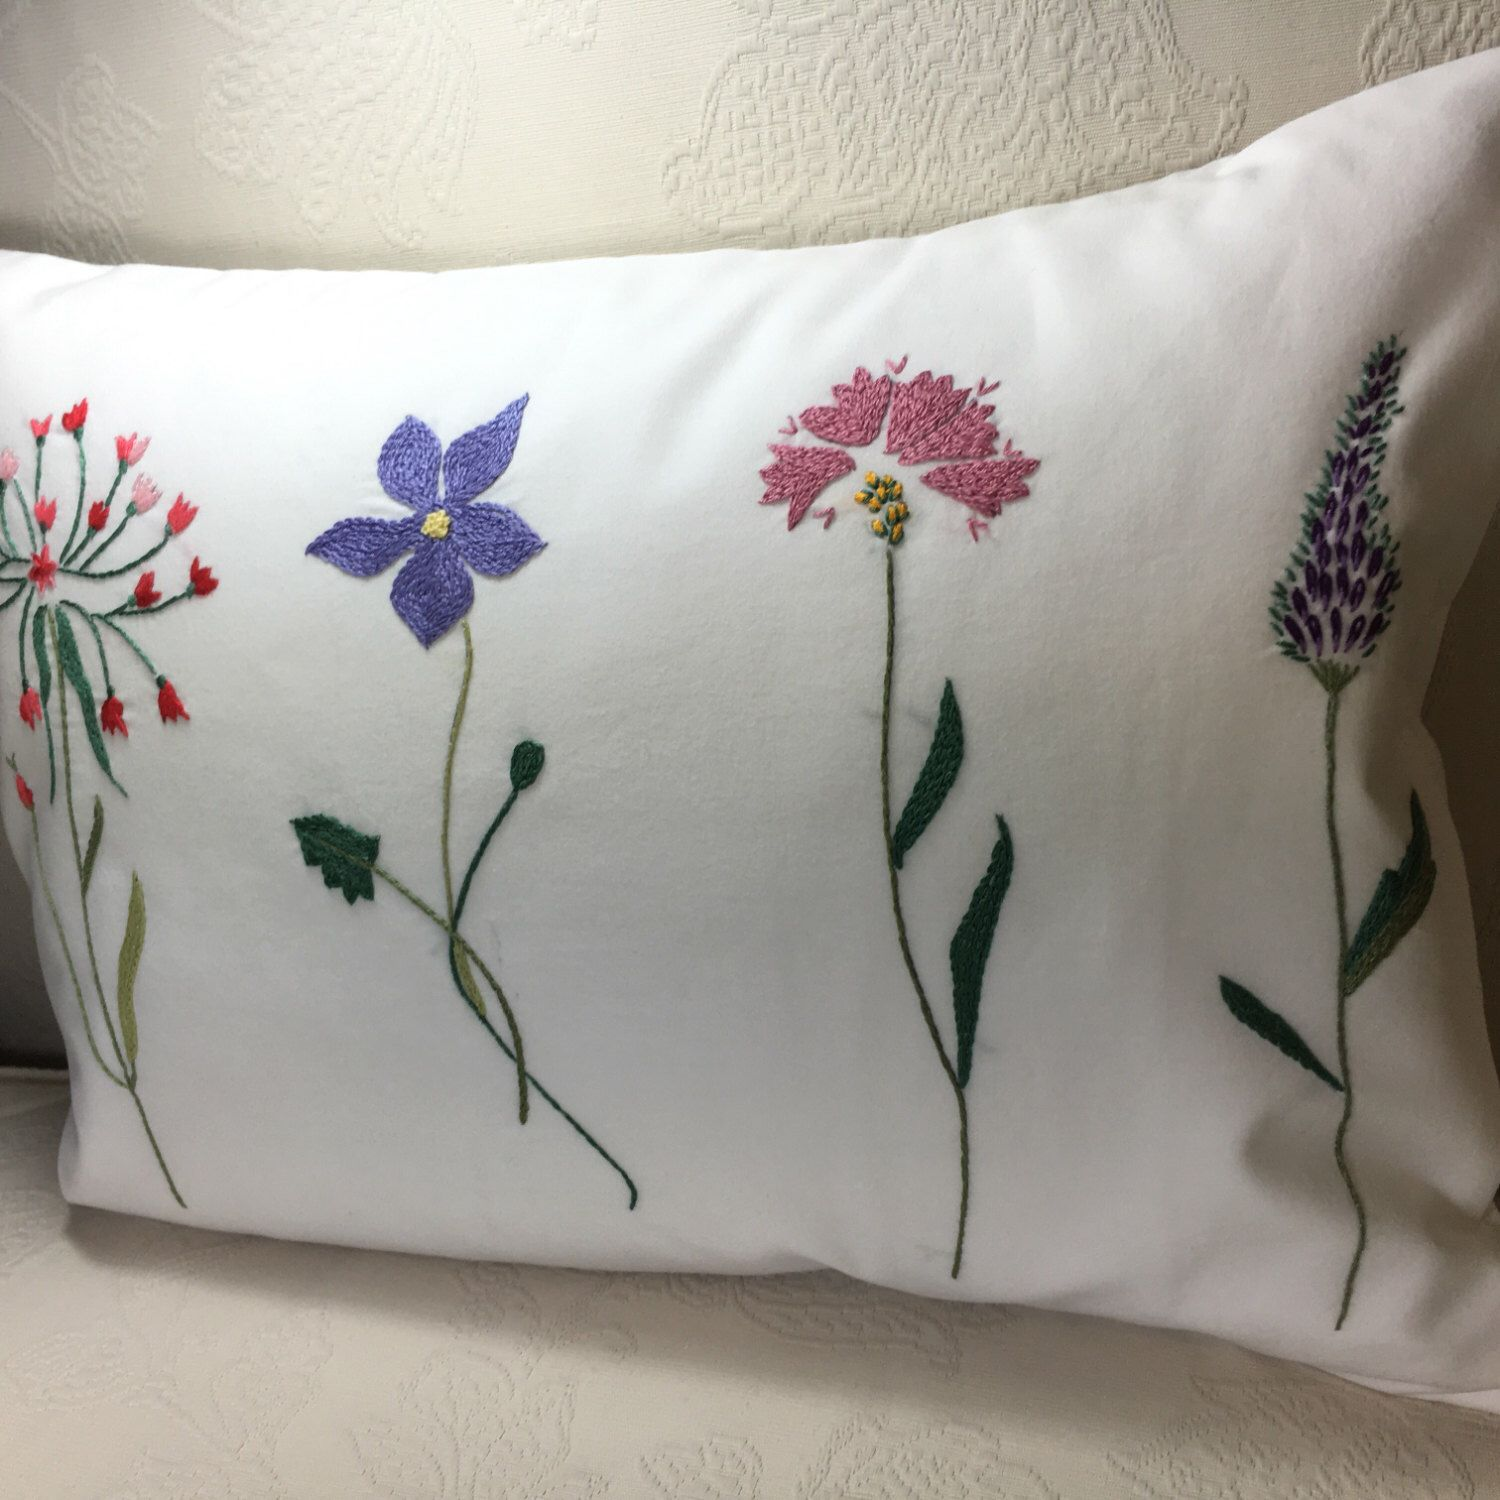 by Handembroiderypillow on Etsy https://www.etsy.com/listing/454609858/floral-pillow